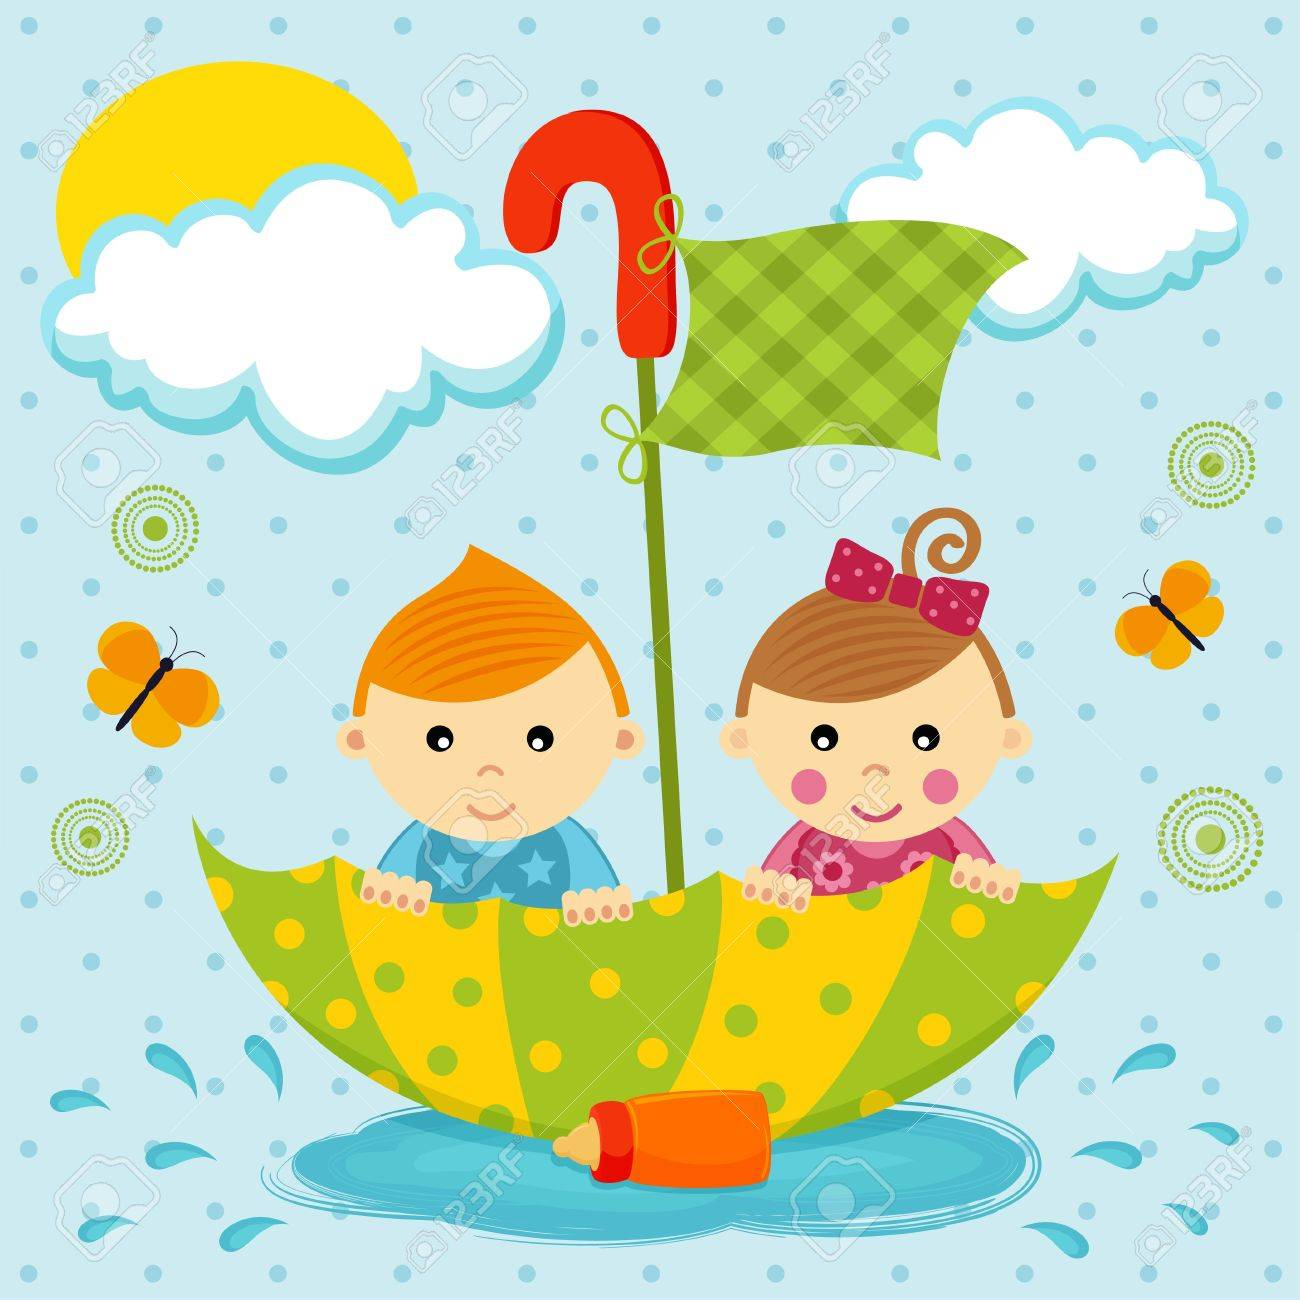 little boy and girl floating in a puddle by the umbrella Standard-Bild - 19424338